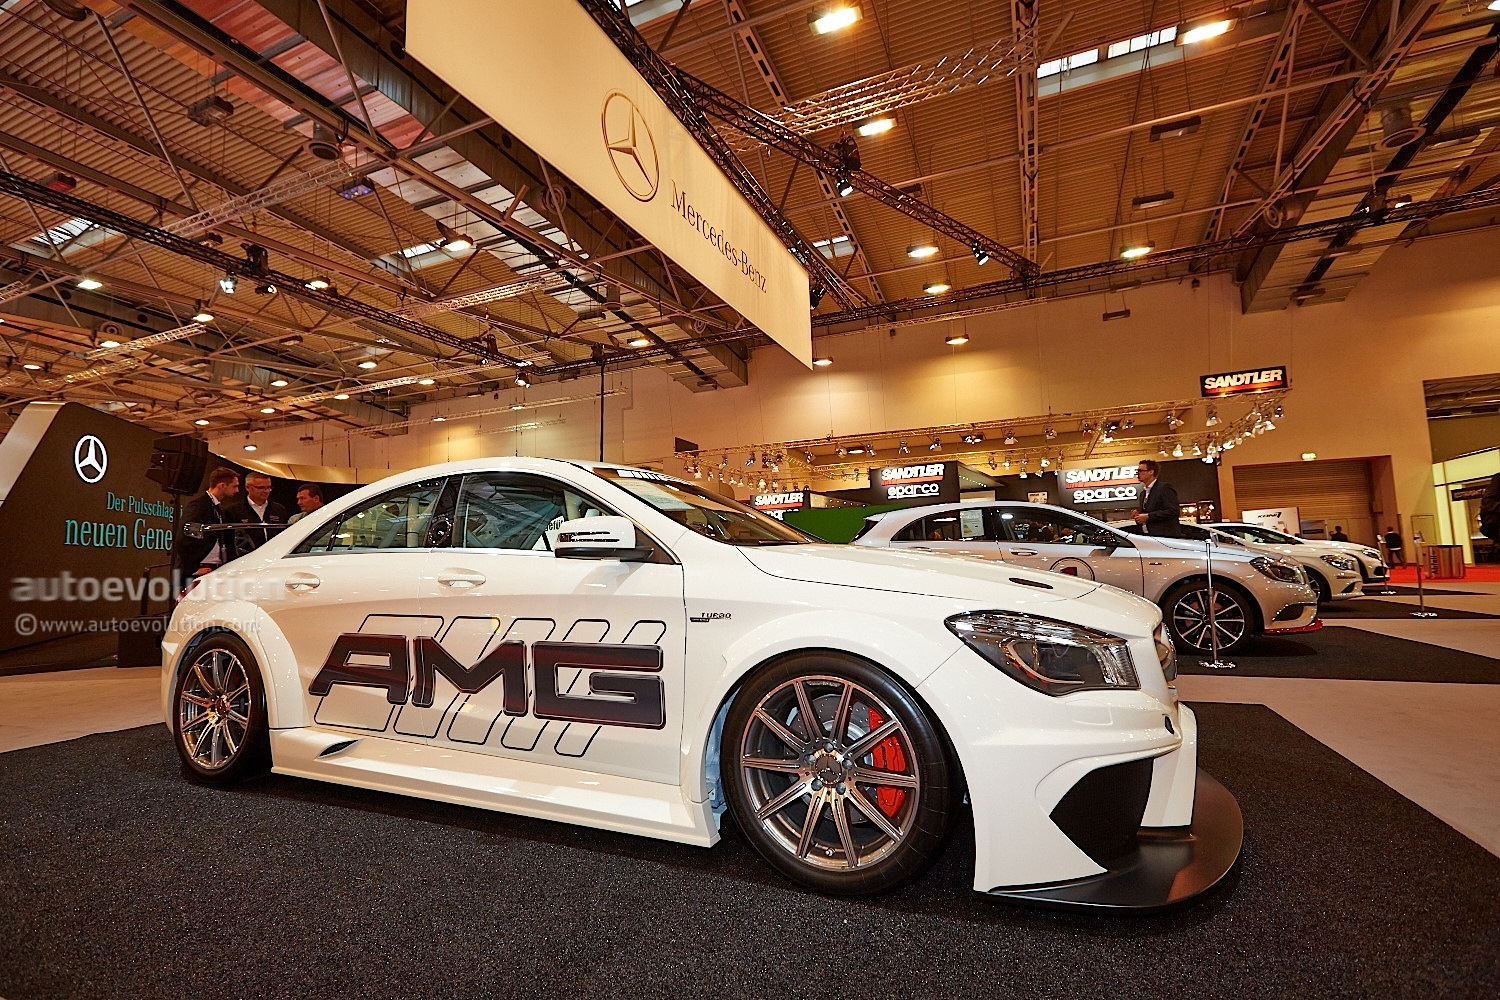 cla 45 amg racing series looks track hungry at essen autoevolution. Black Bedroom Furniture Sets. Home Design Ideas